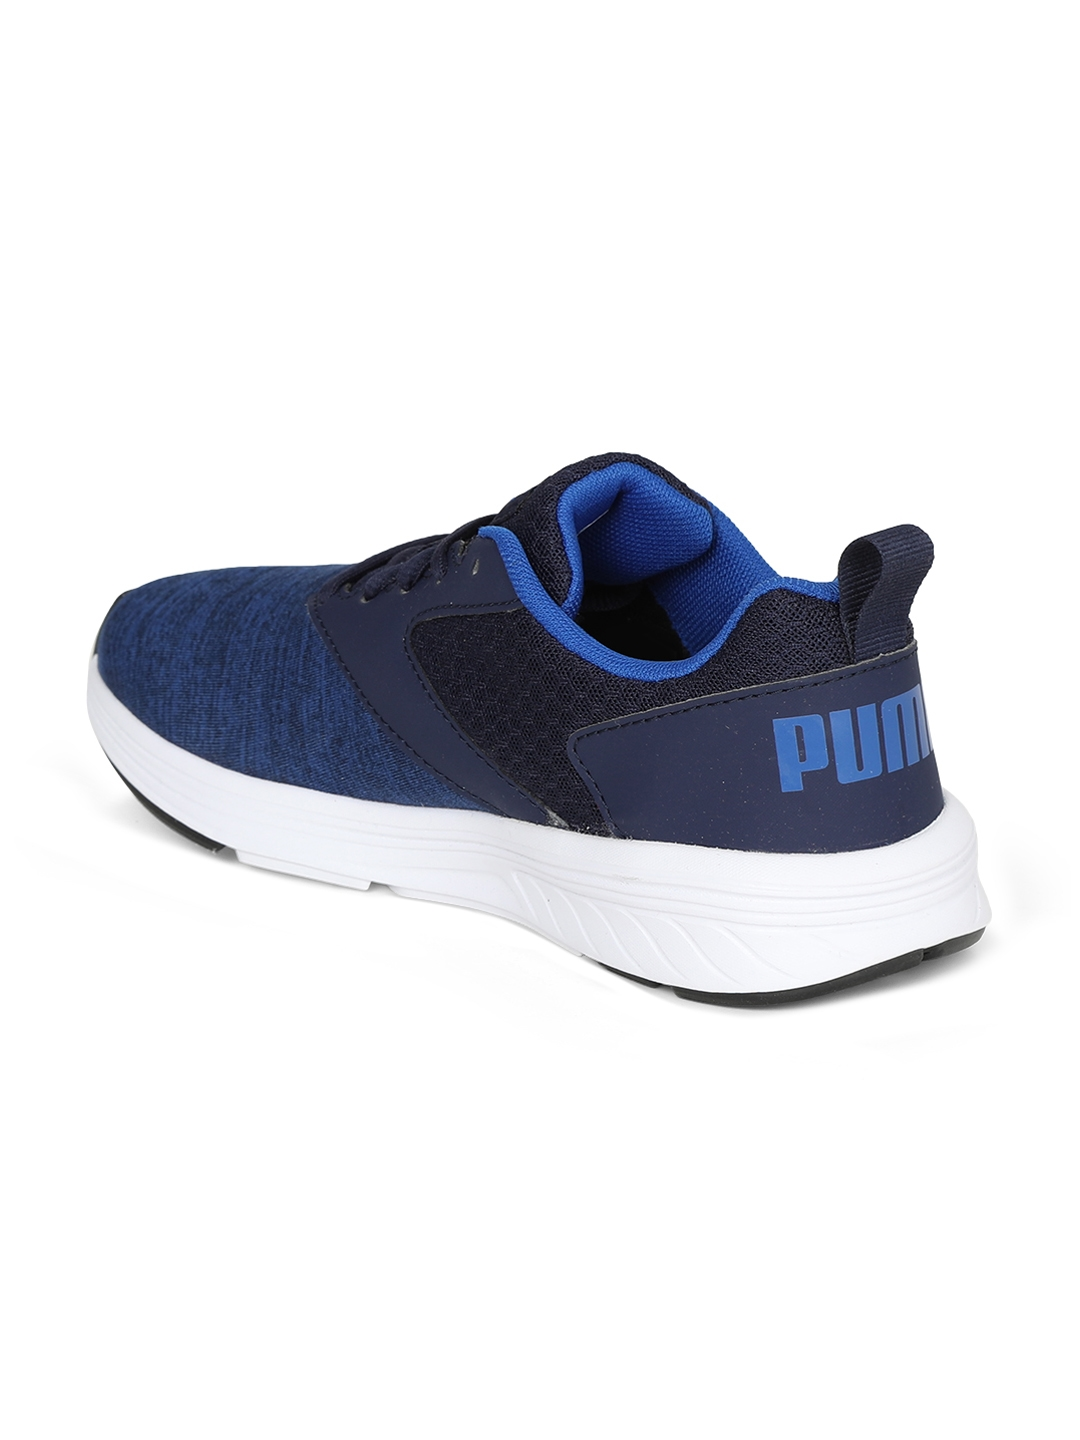 f3c7315233bc Buy Puma Unisex Blue NRGY Comet Running Shoes - Sports Shoes for ...